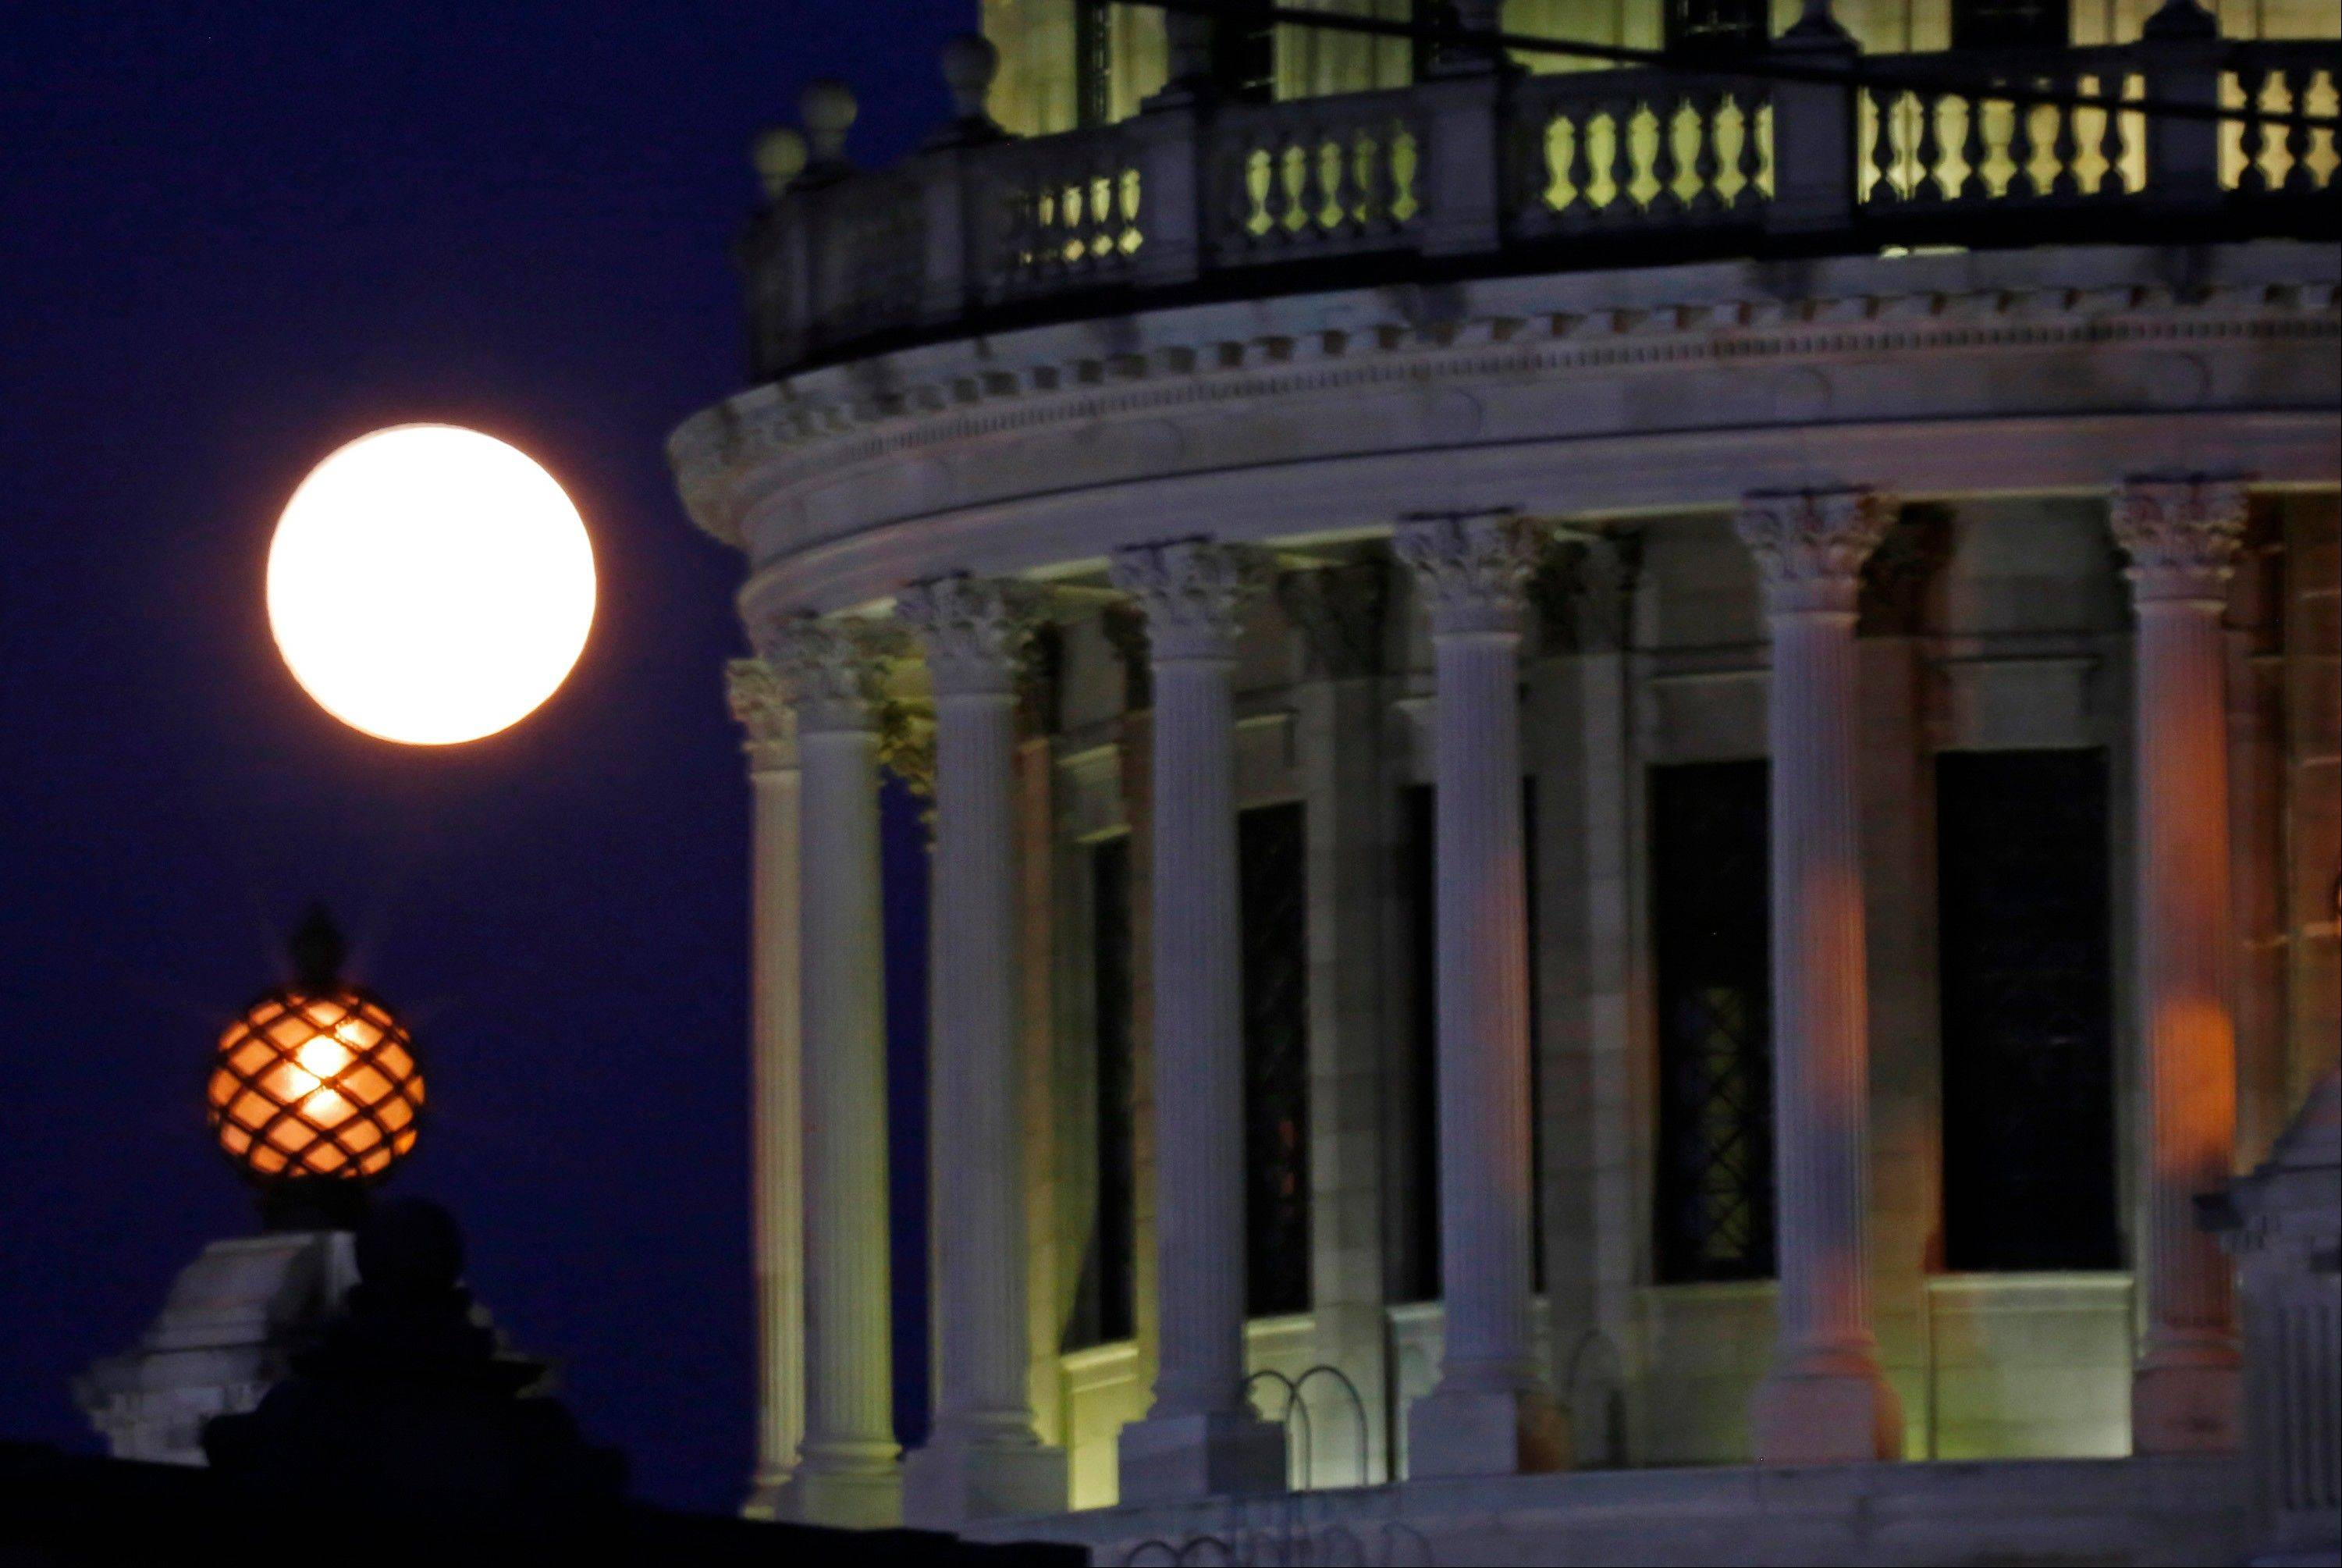 A full moon sets by the exterior of the state Capitol in Jackson, Miss., Sunday morning, June 23, 2013. The moon, which will reach its full stage Sunday, is expected to be significantly closer to earth during a phenomenon known as supermoon.